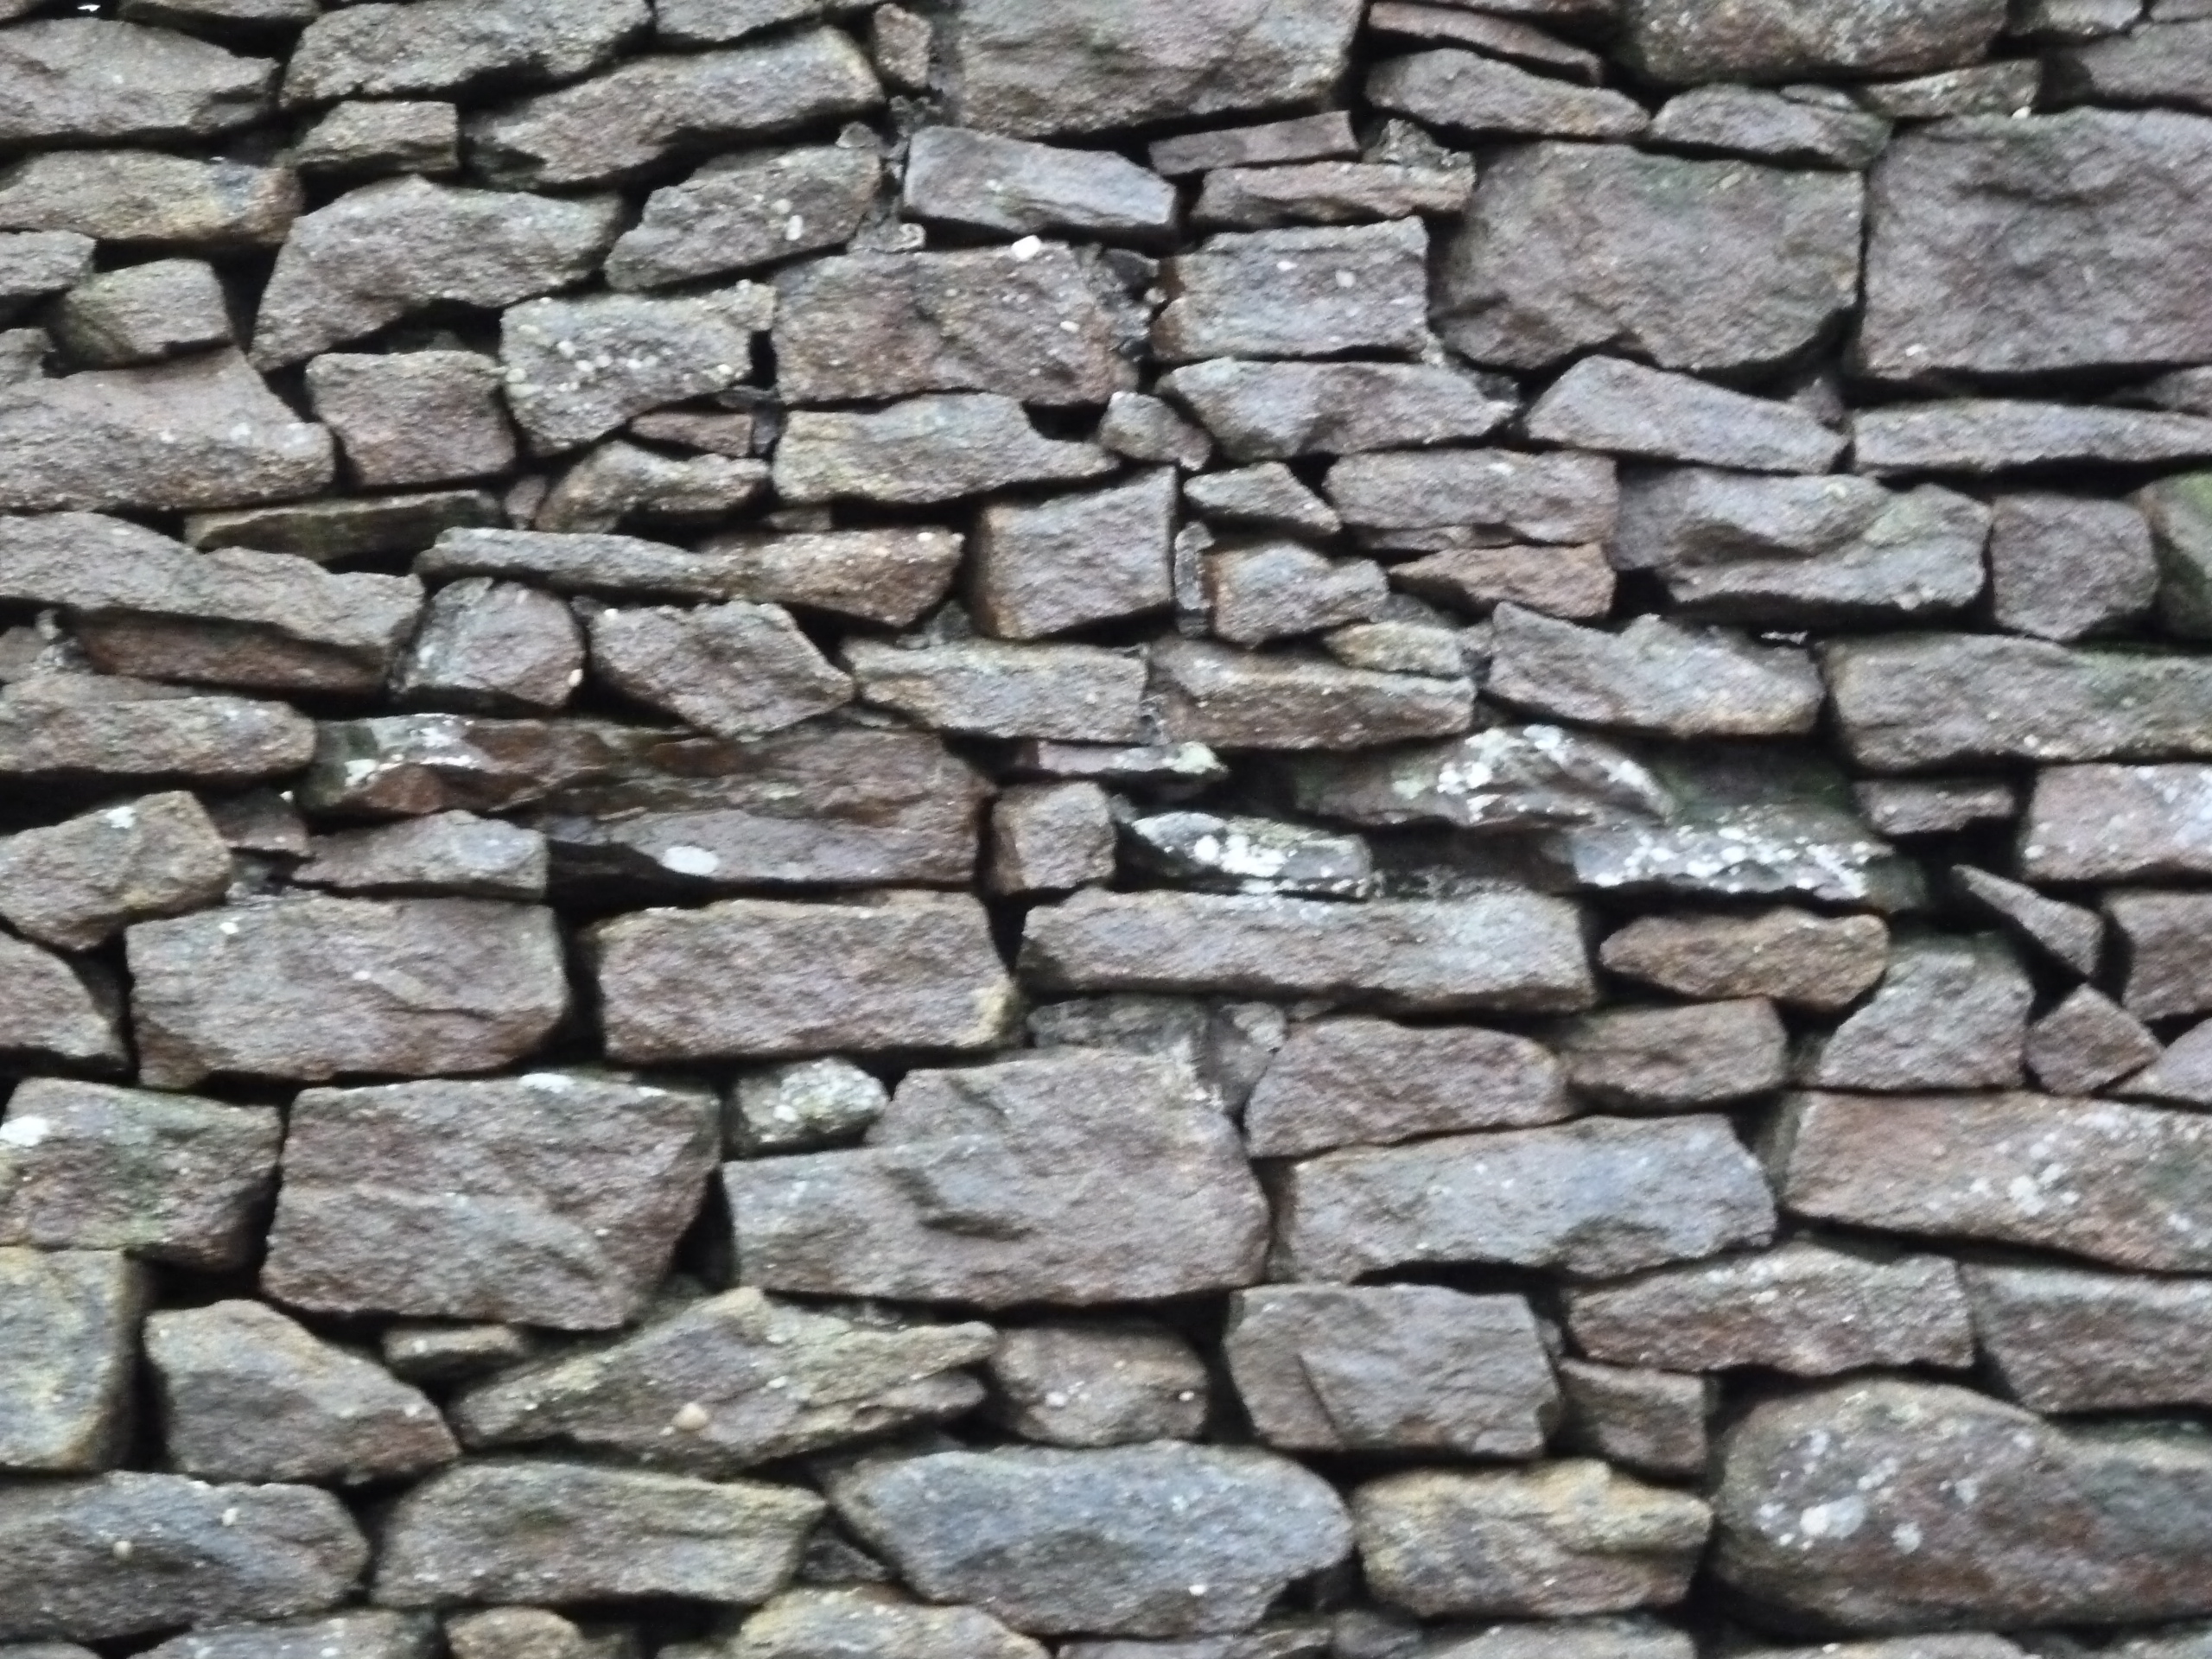 Stone Veneer Wall : Images about rock stone reference on pinterest